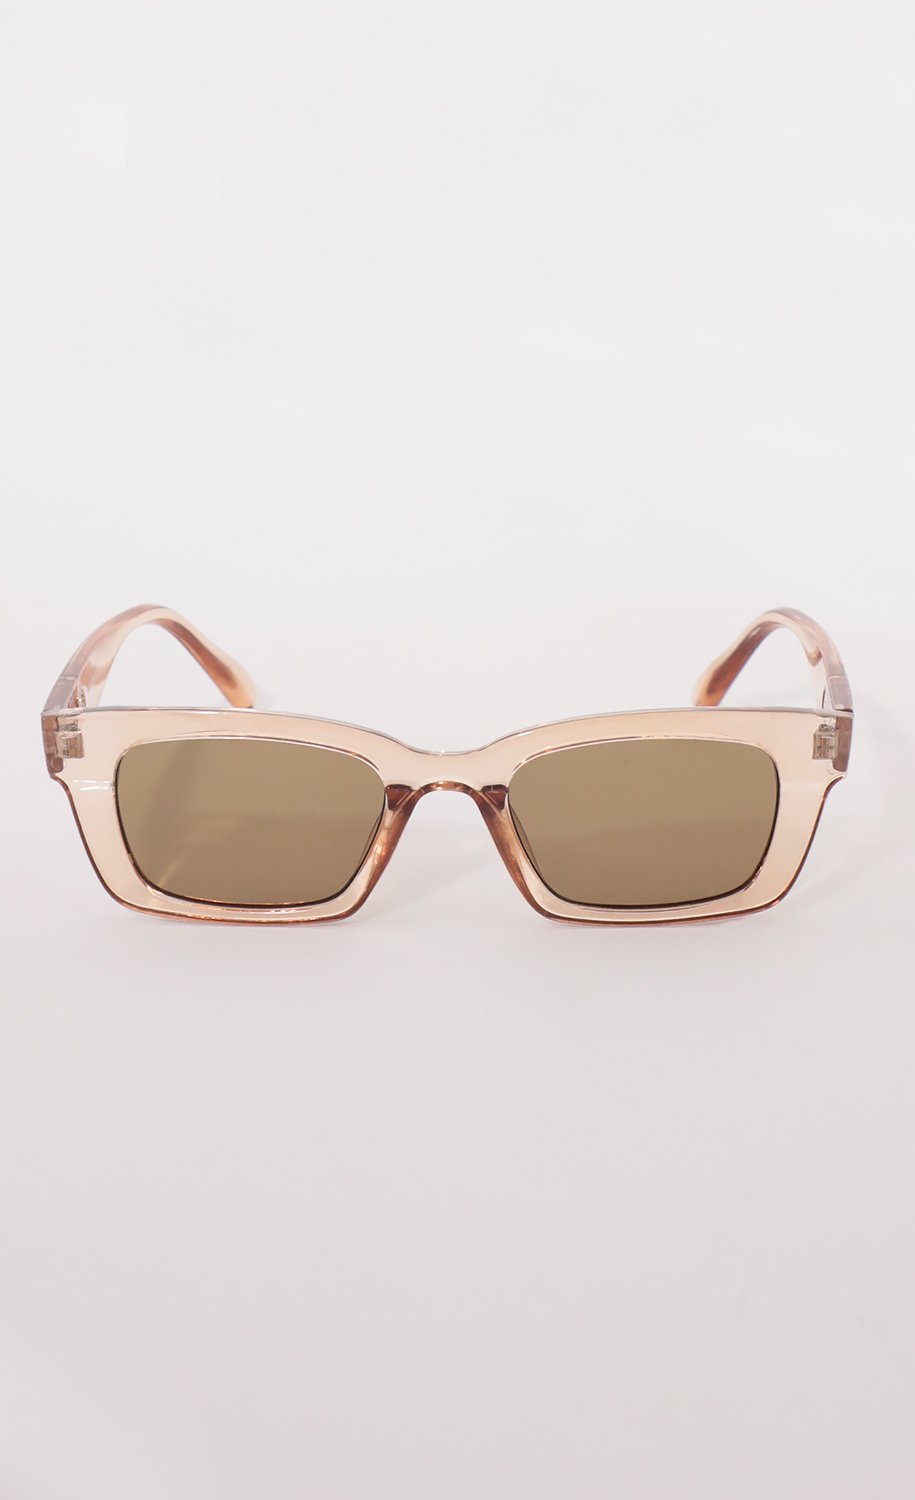 Henrietta Classic Sunglasses in Peach